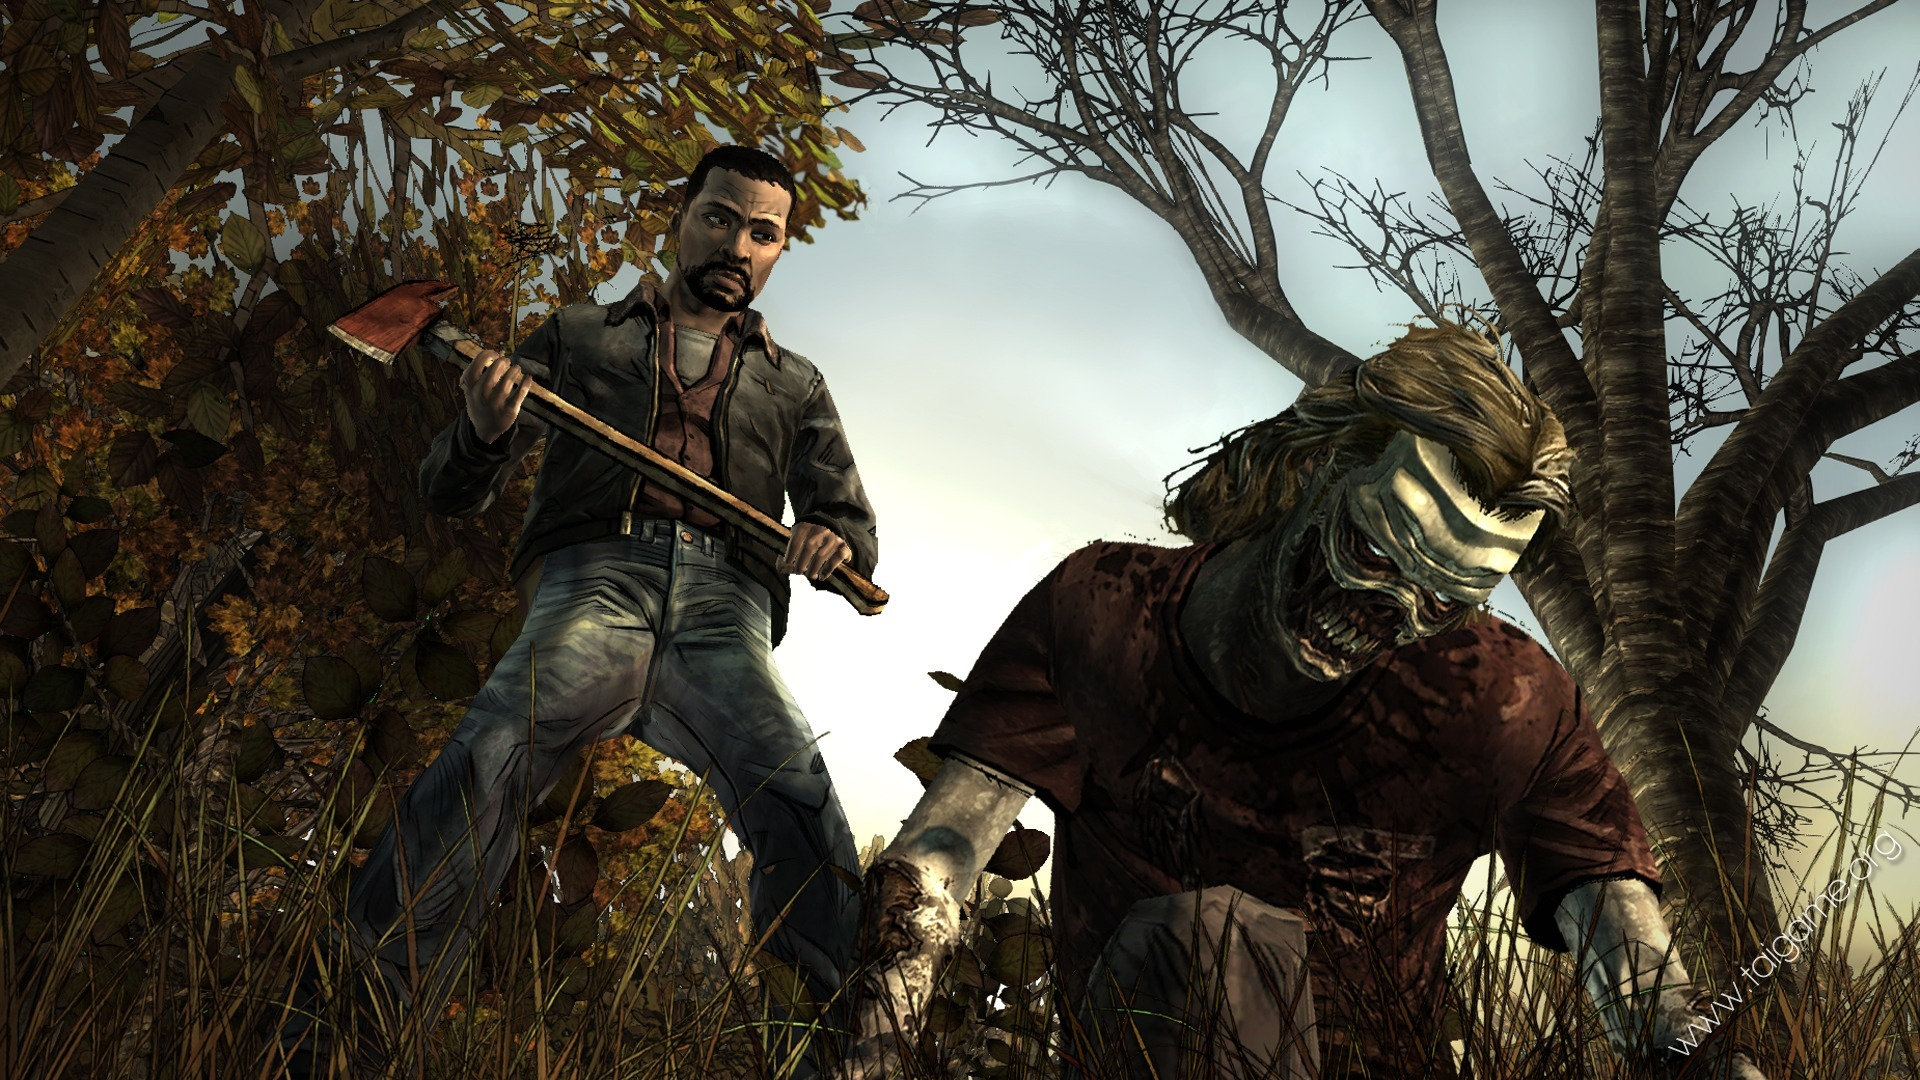 Free download walking dead season 1 full episodes.